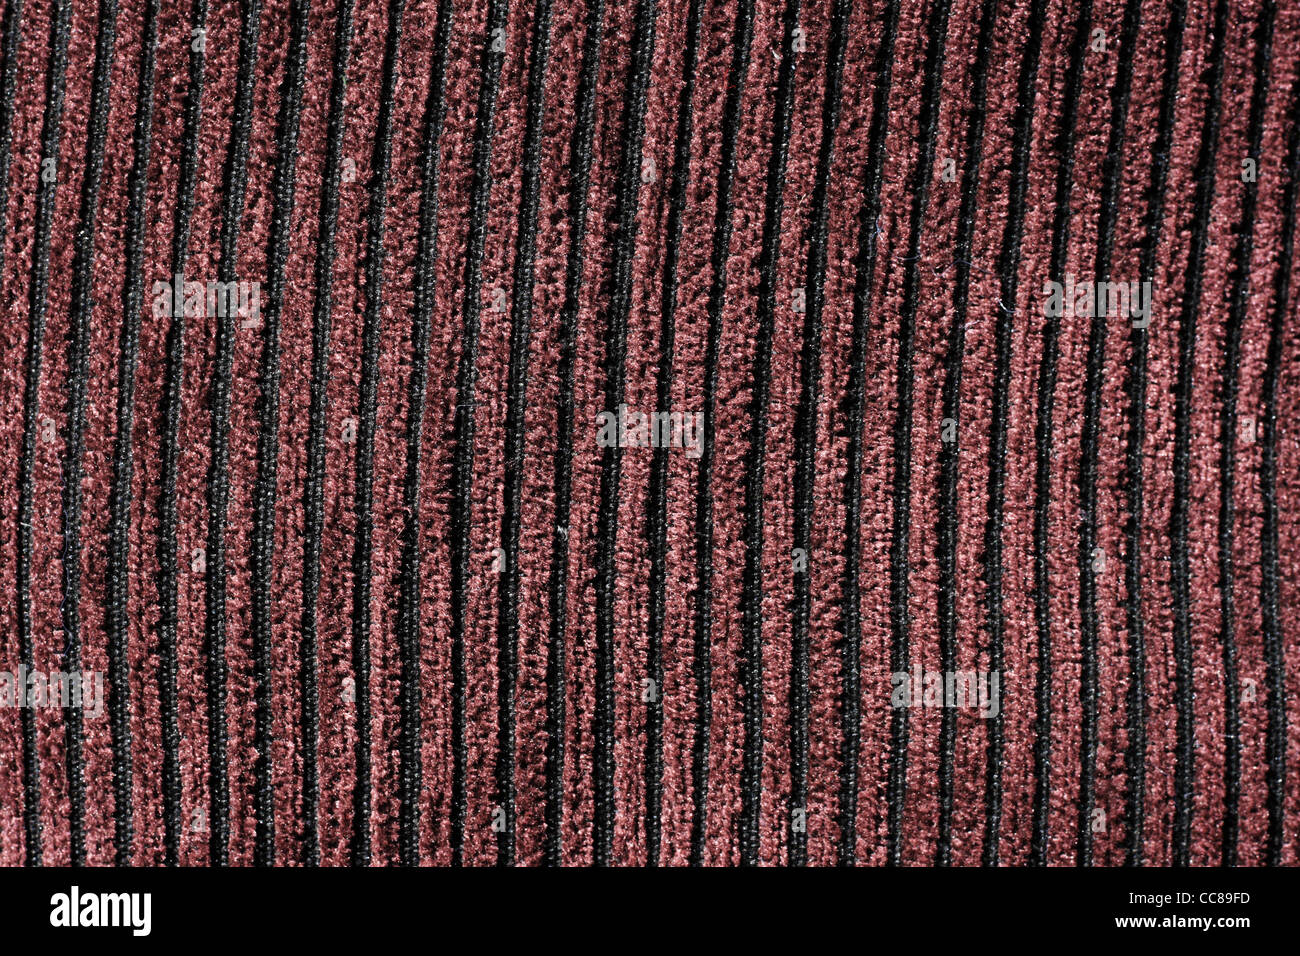 brown and black wide wale corduroy background - Stock Image